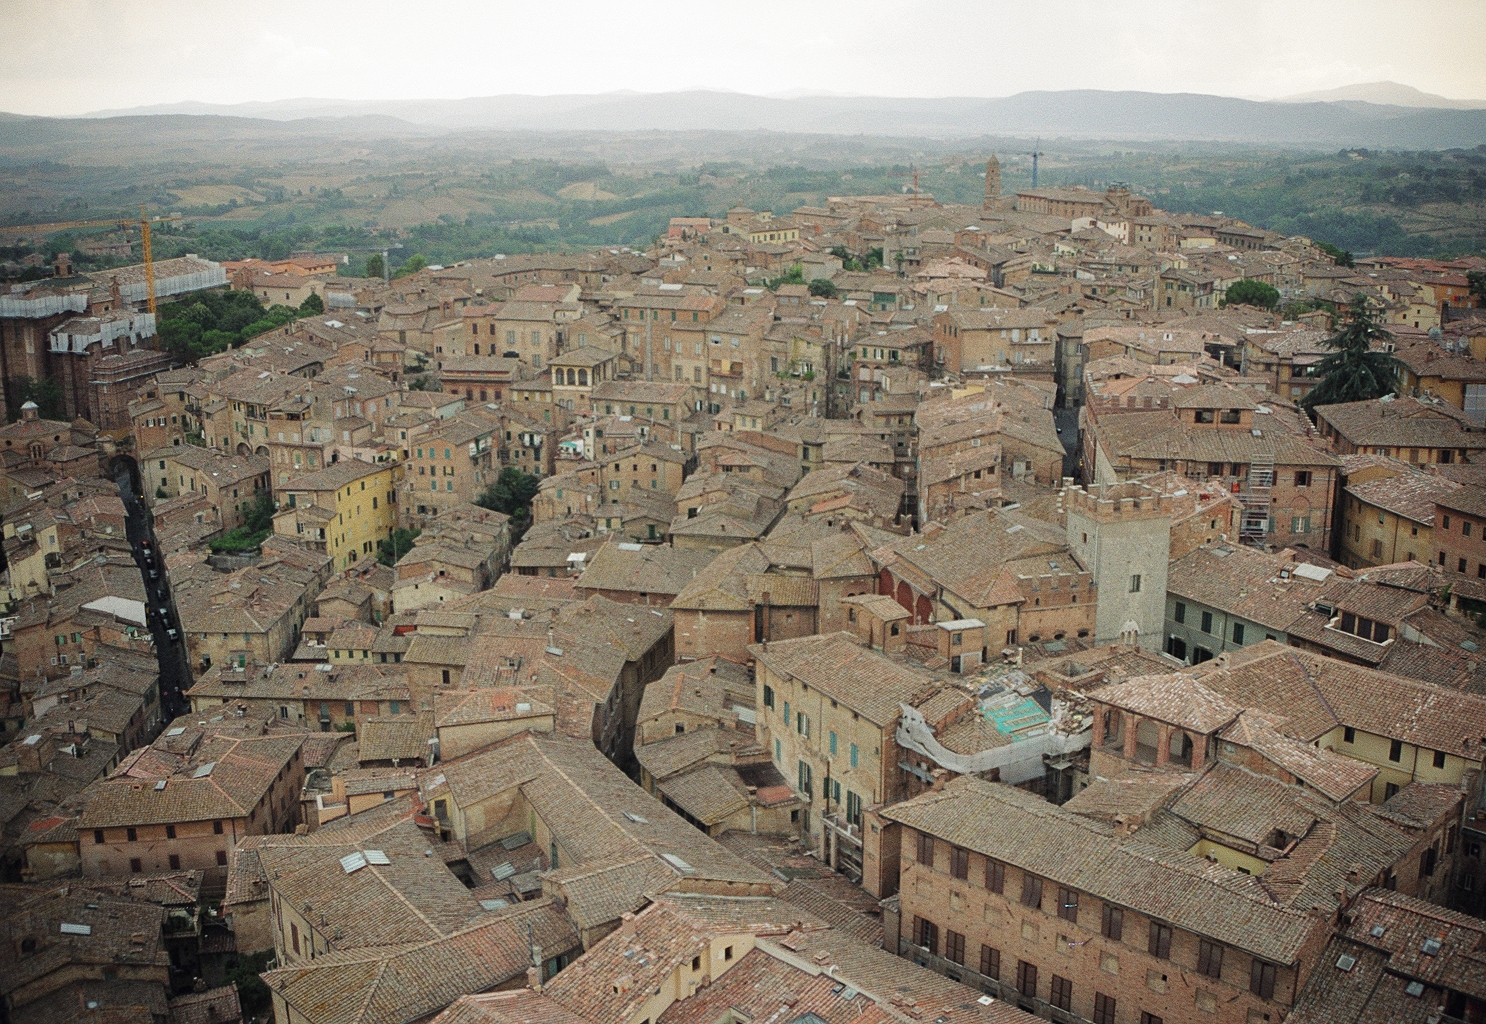 Traditional compact urbanism, Siena, Italy